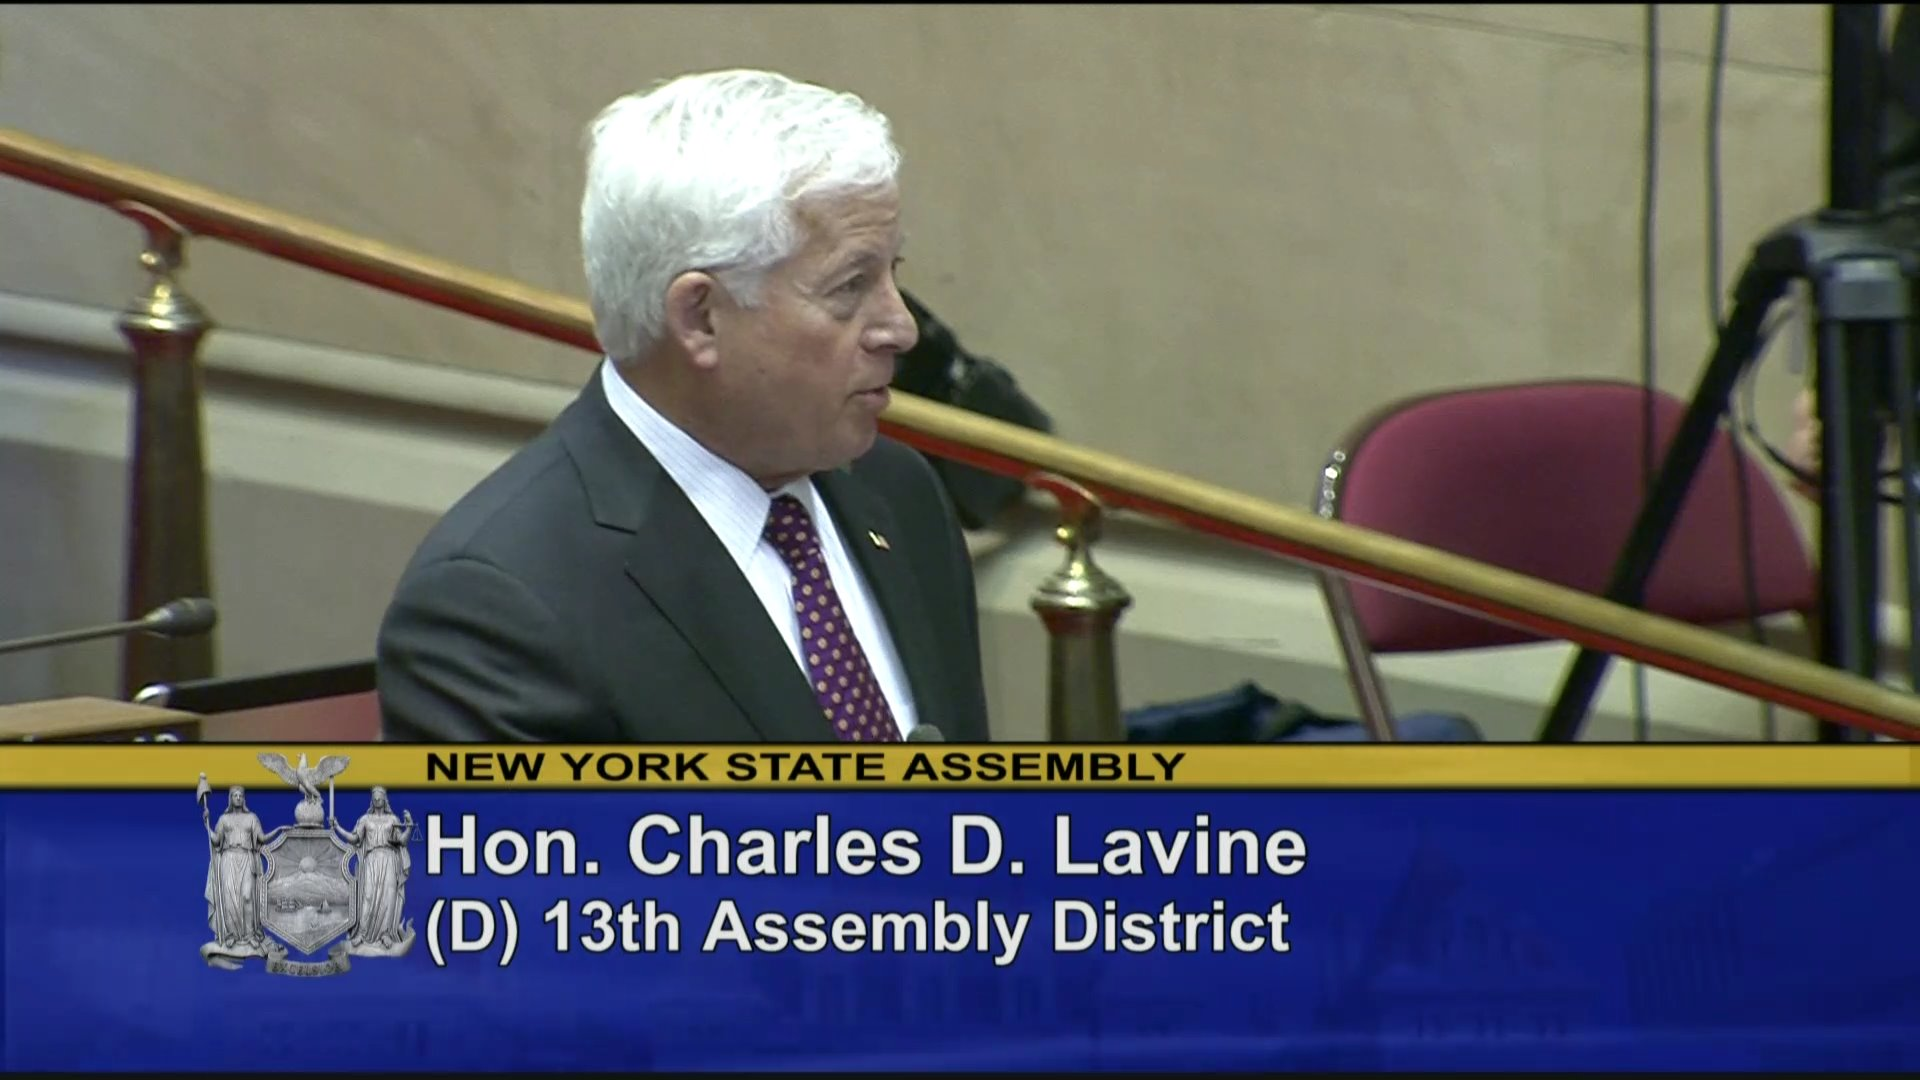 Assemblyman Lavine Introduces LI Builders Institute